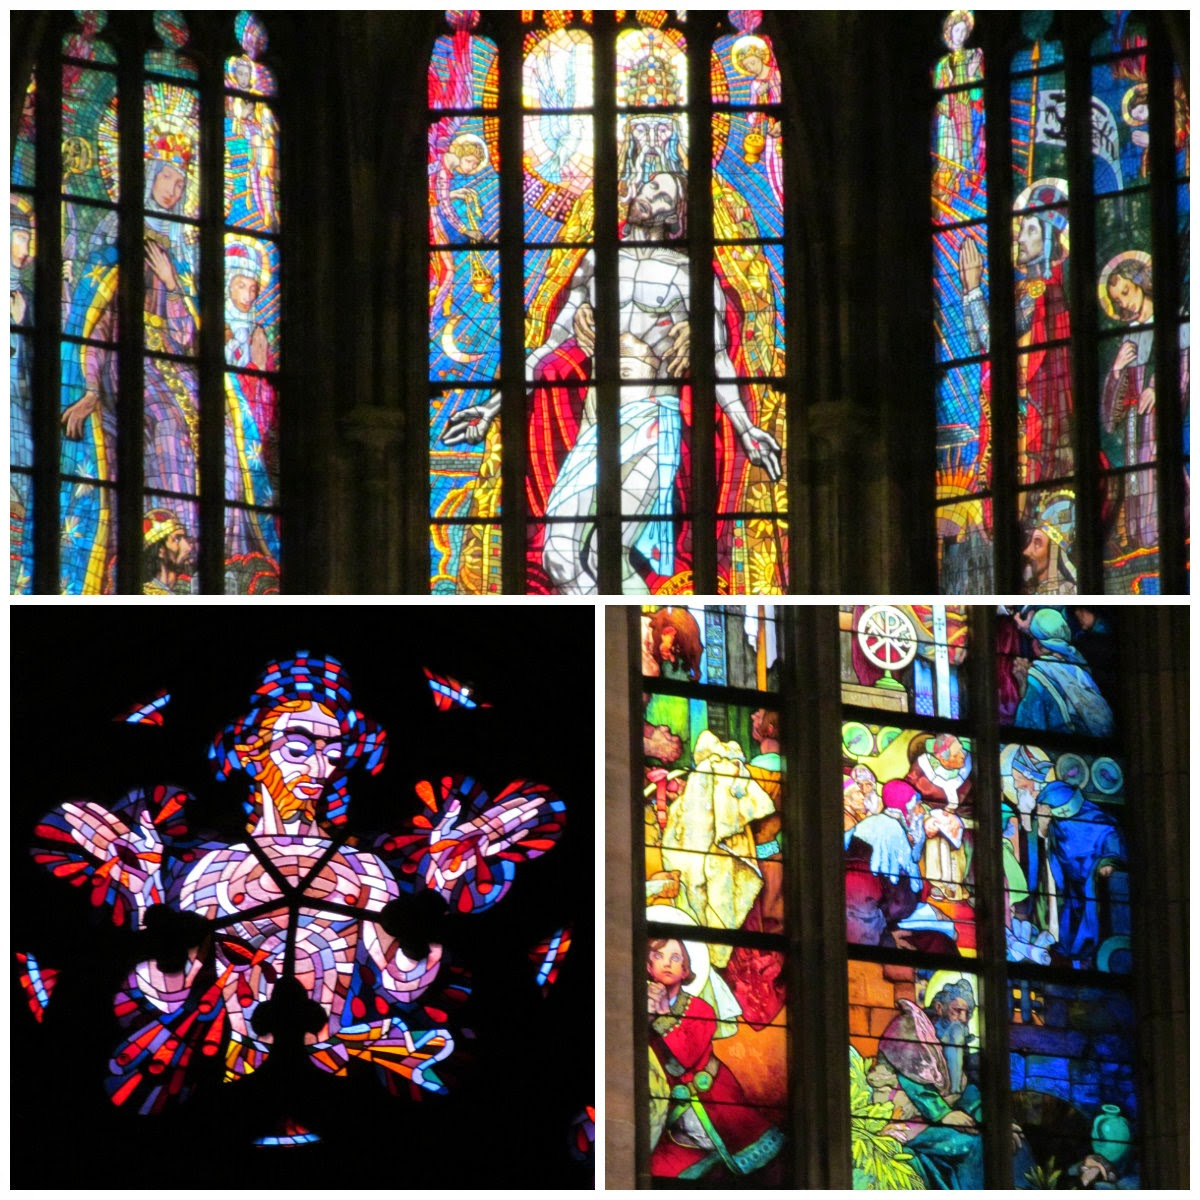 st vitus stained glass windows